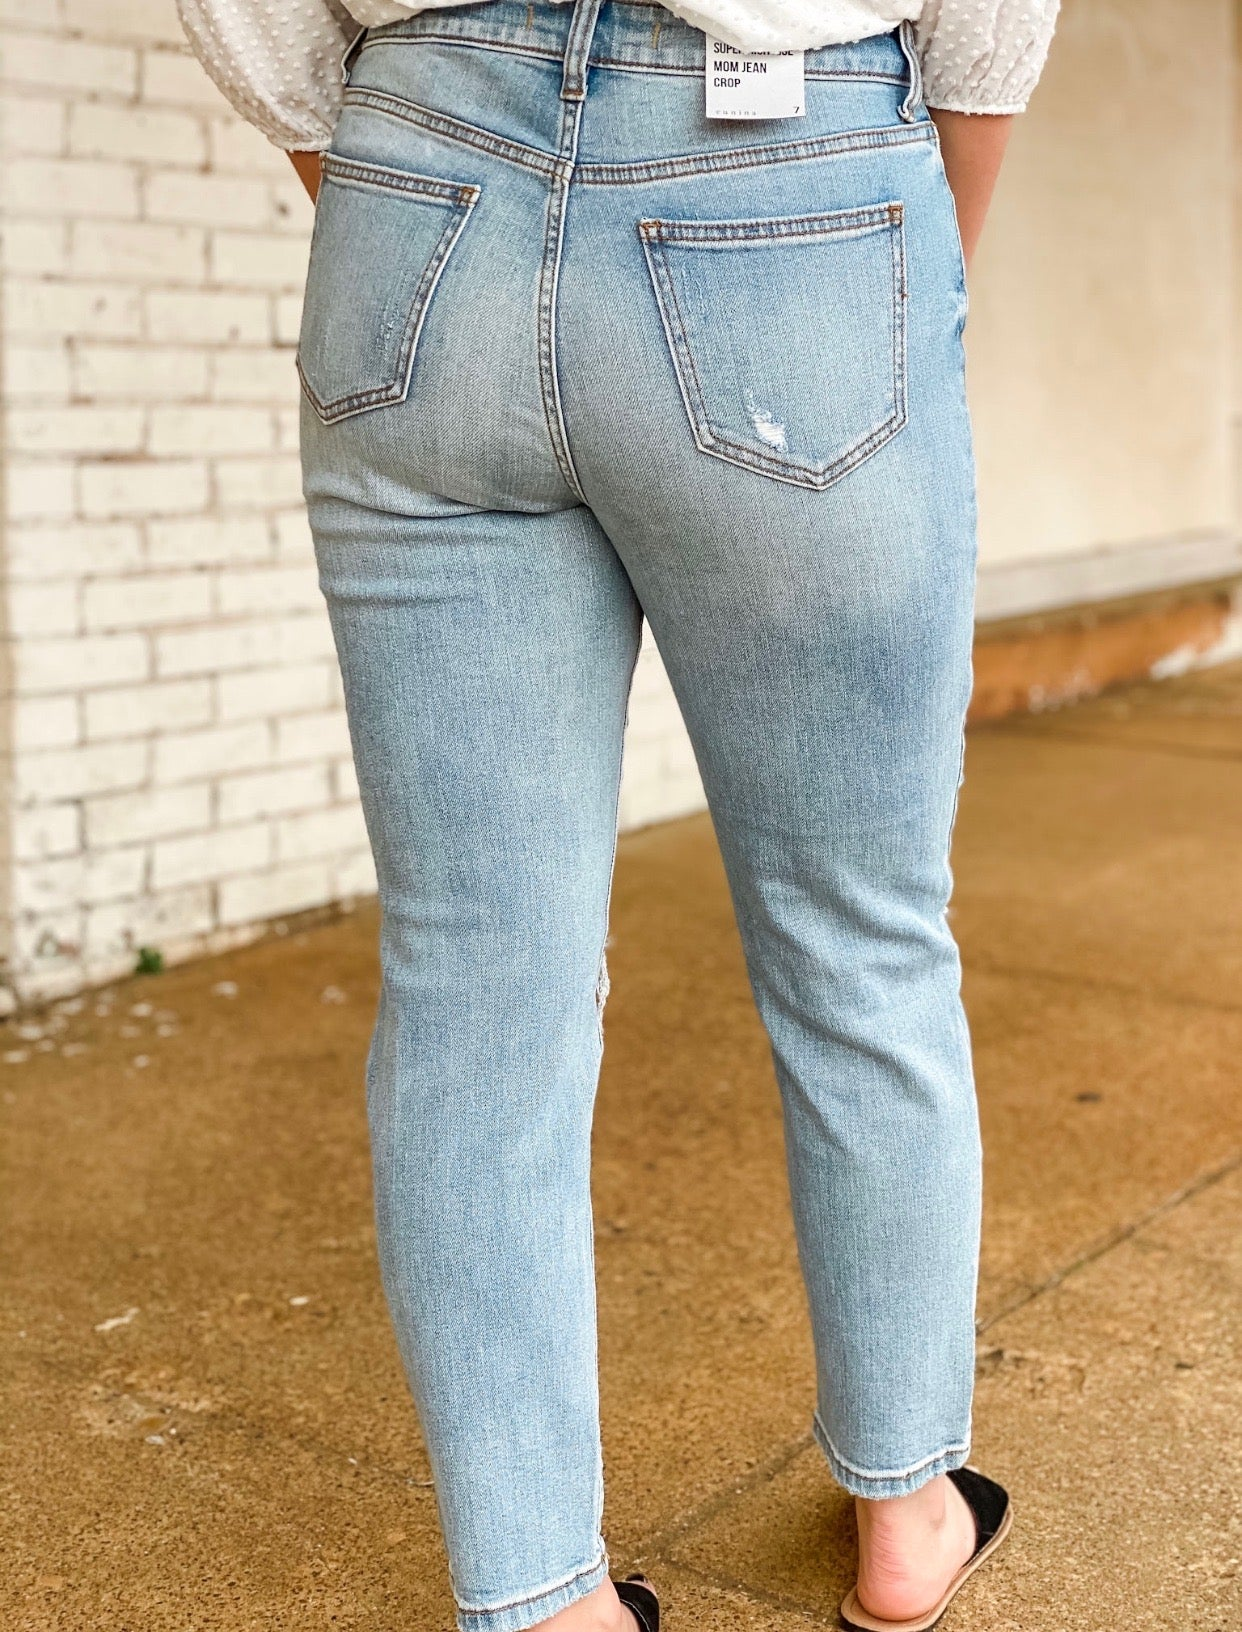 TOBI JEANS - aster & elm eunina high rise cropped mom jeans